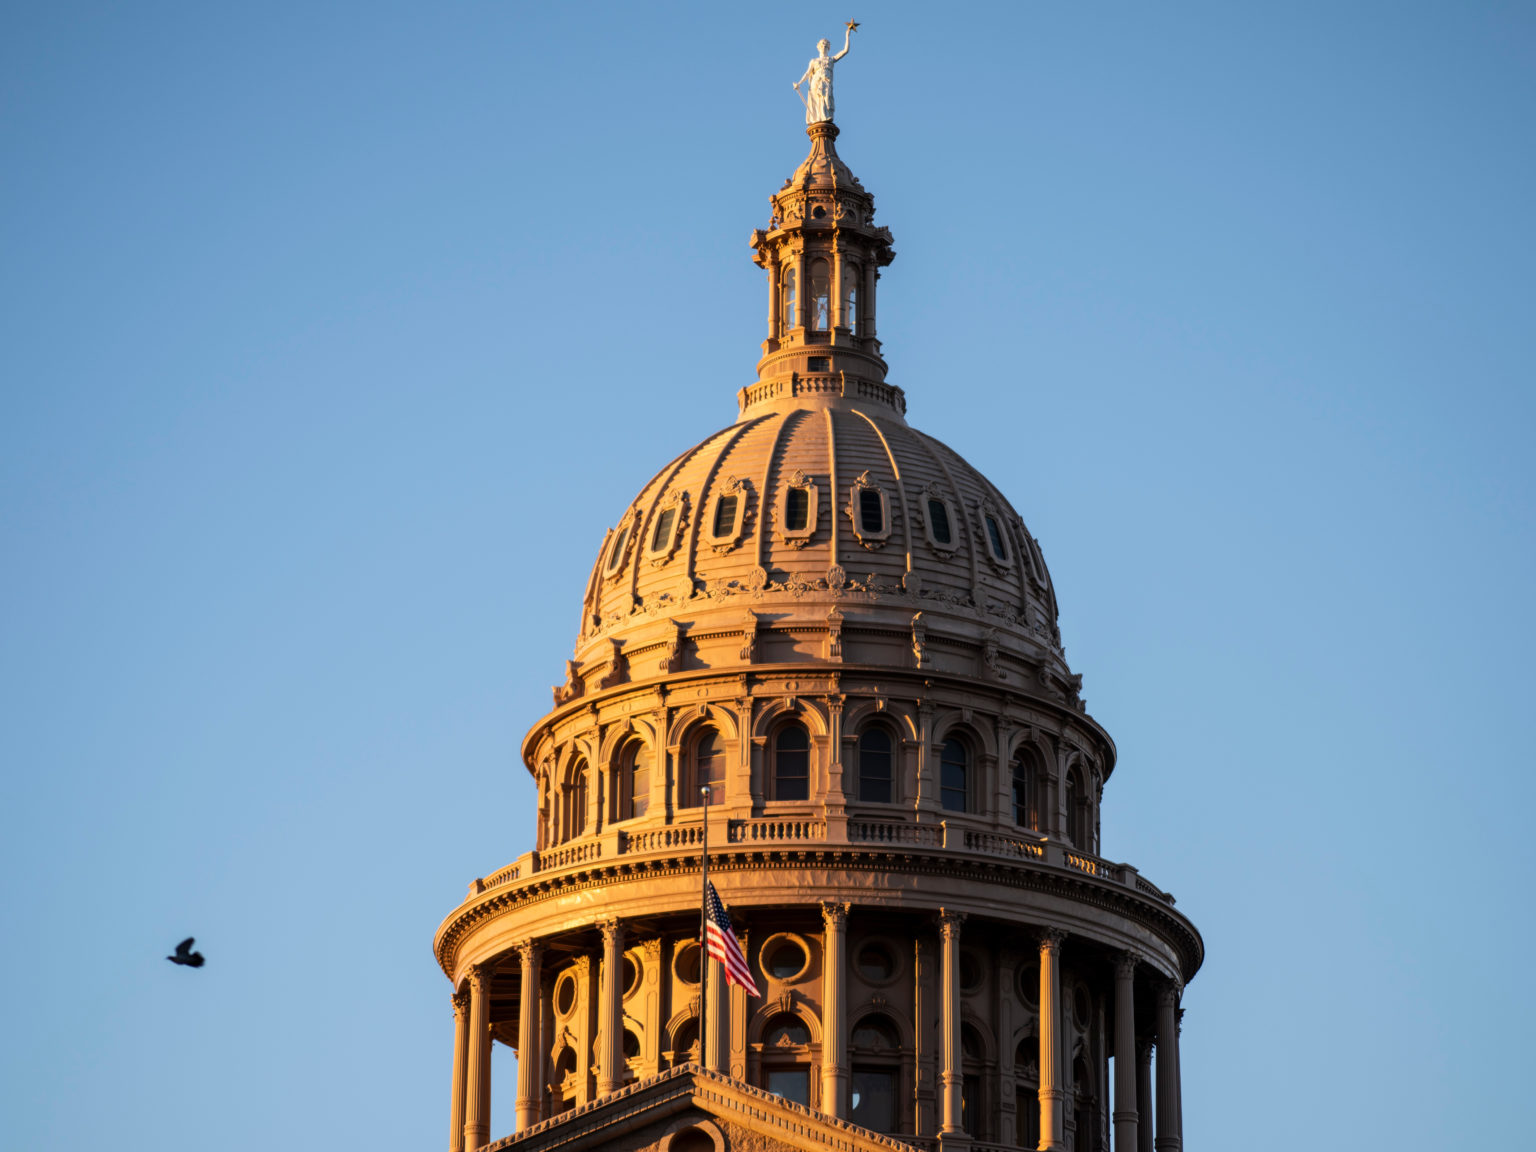 The Texas State Capitol Building during the 87th Legislative Session at the Texas State Capitol in Austin, Texas.